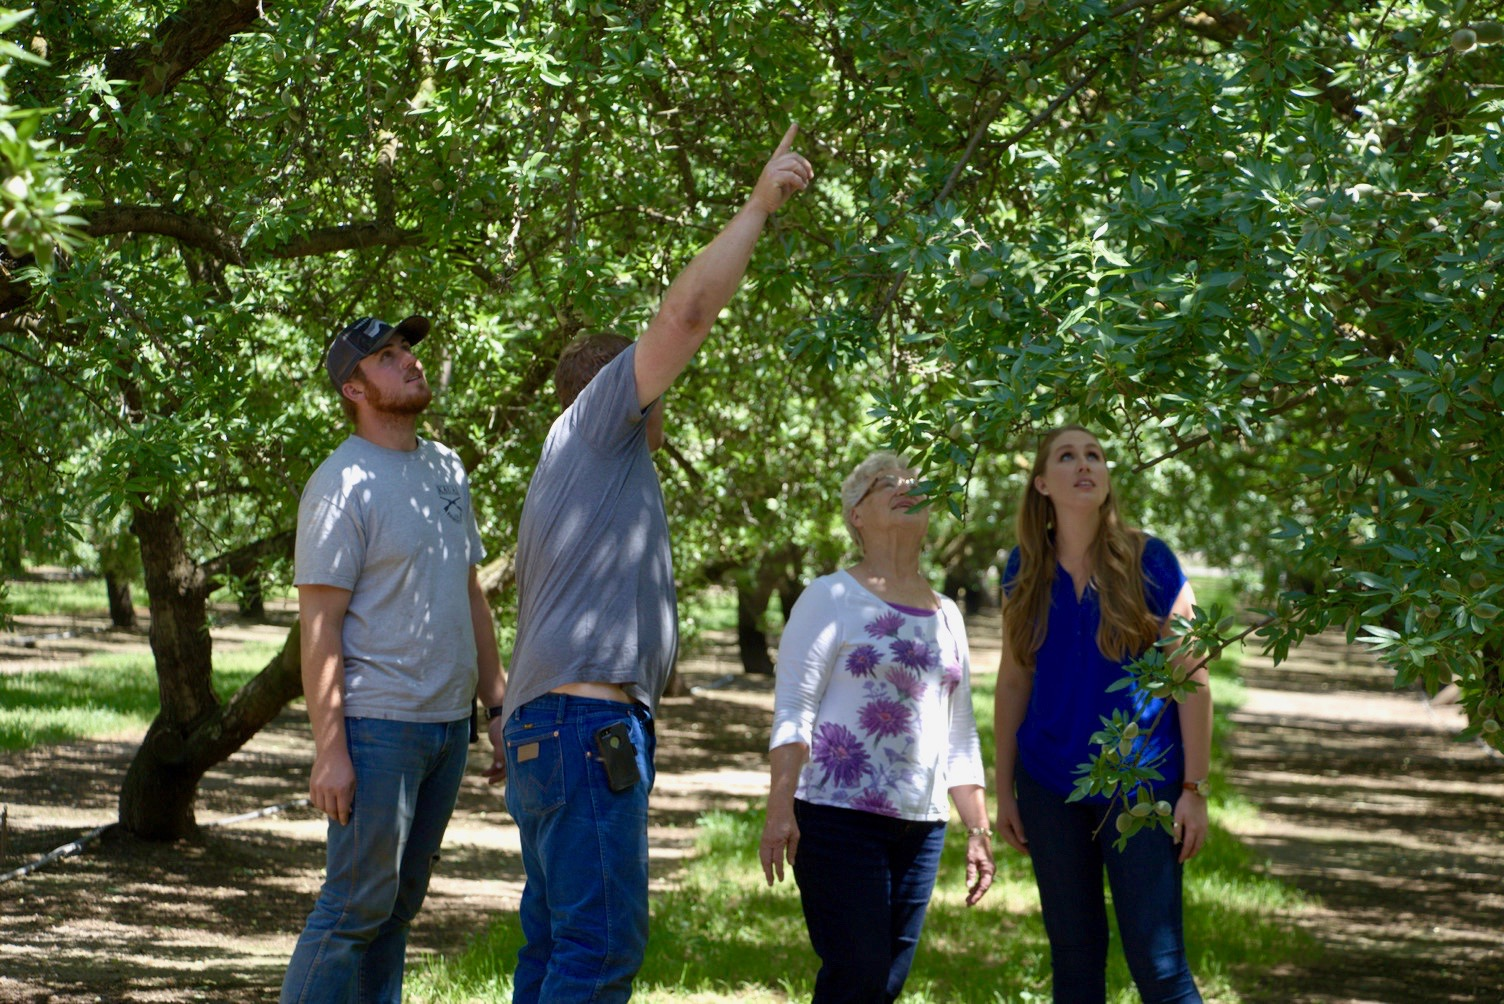 A farming family looking at an almond tree.